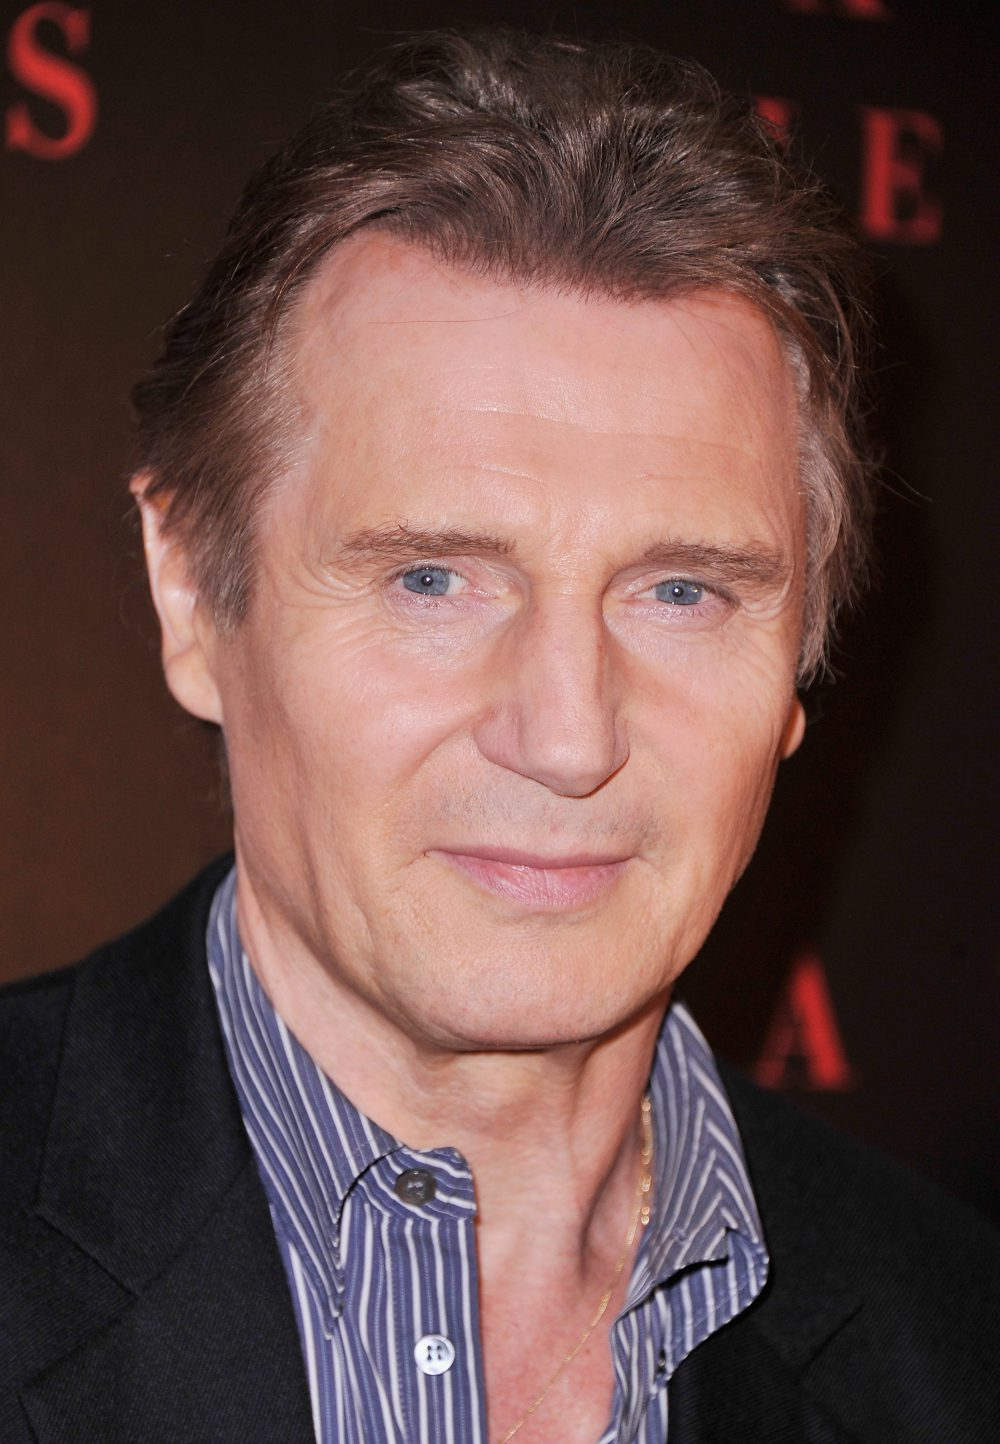 Actor Liam Neeson attends the Universal Pictures and Cross Creek Pictures with The Cinema Society screening of  A Walk Among the Tombstones  at Chelsea Bow Tie Cinemas on Sept. 17, 2014 in New York City.